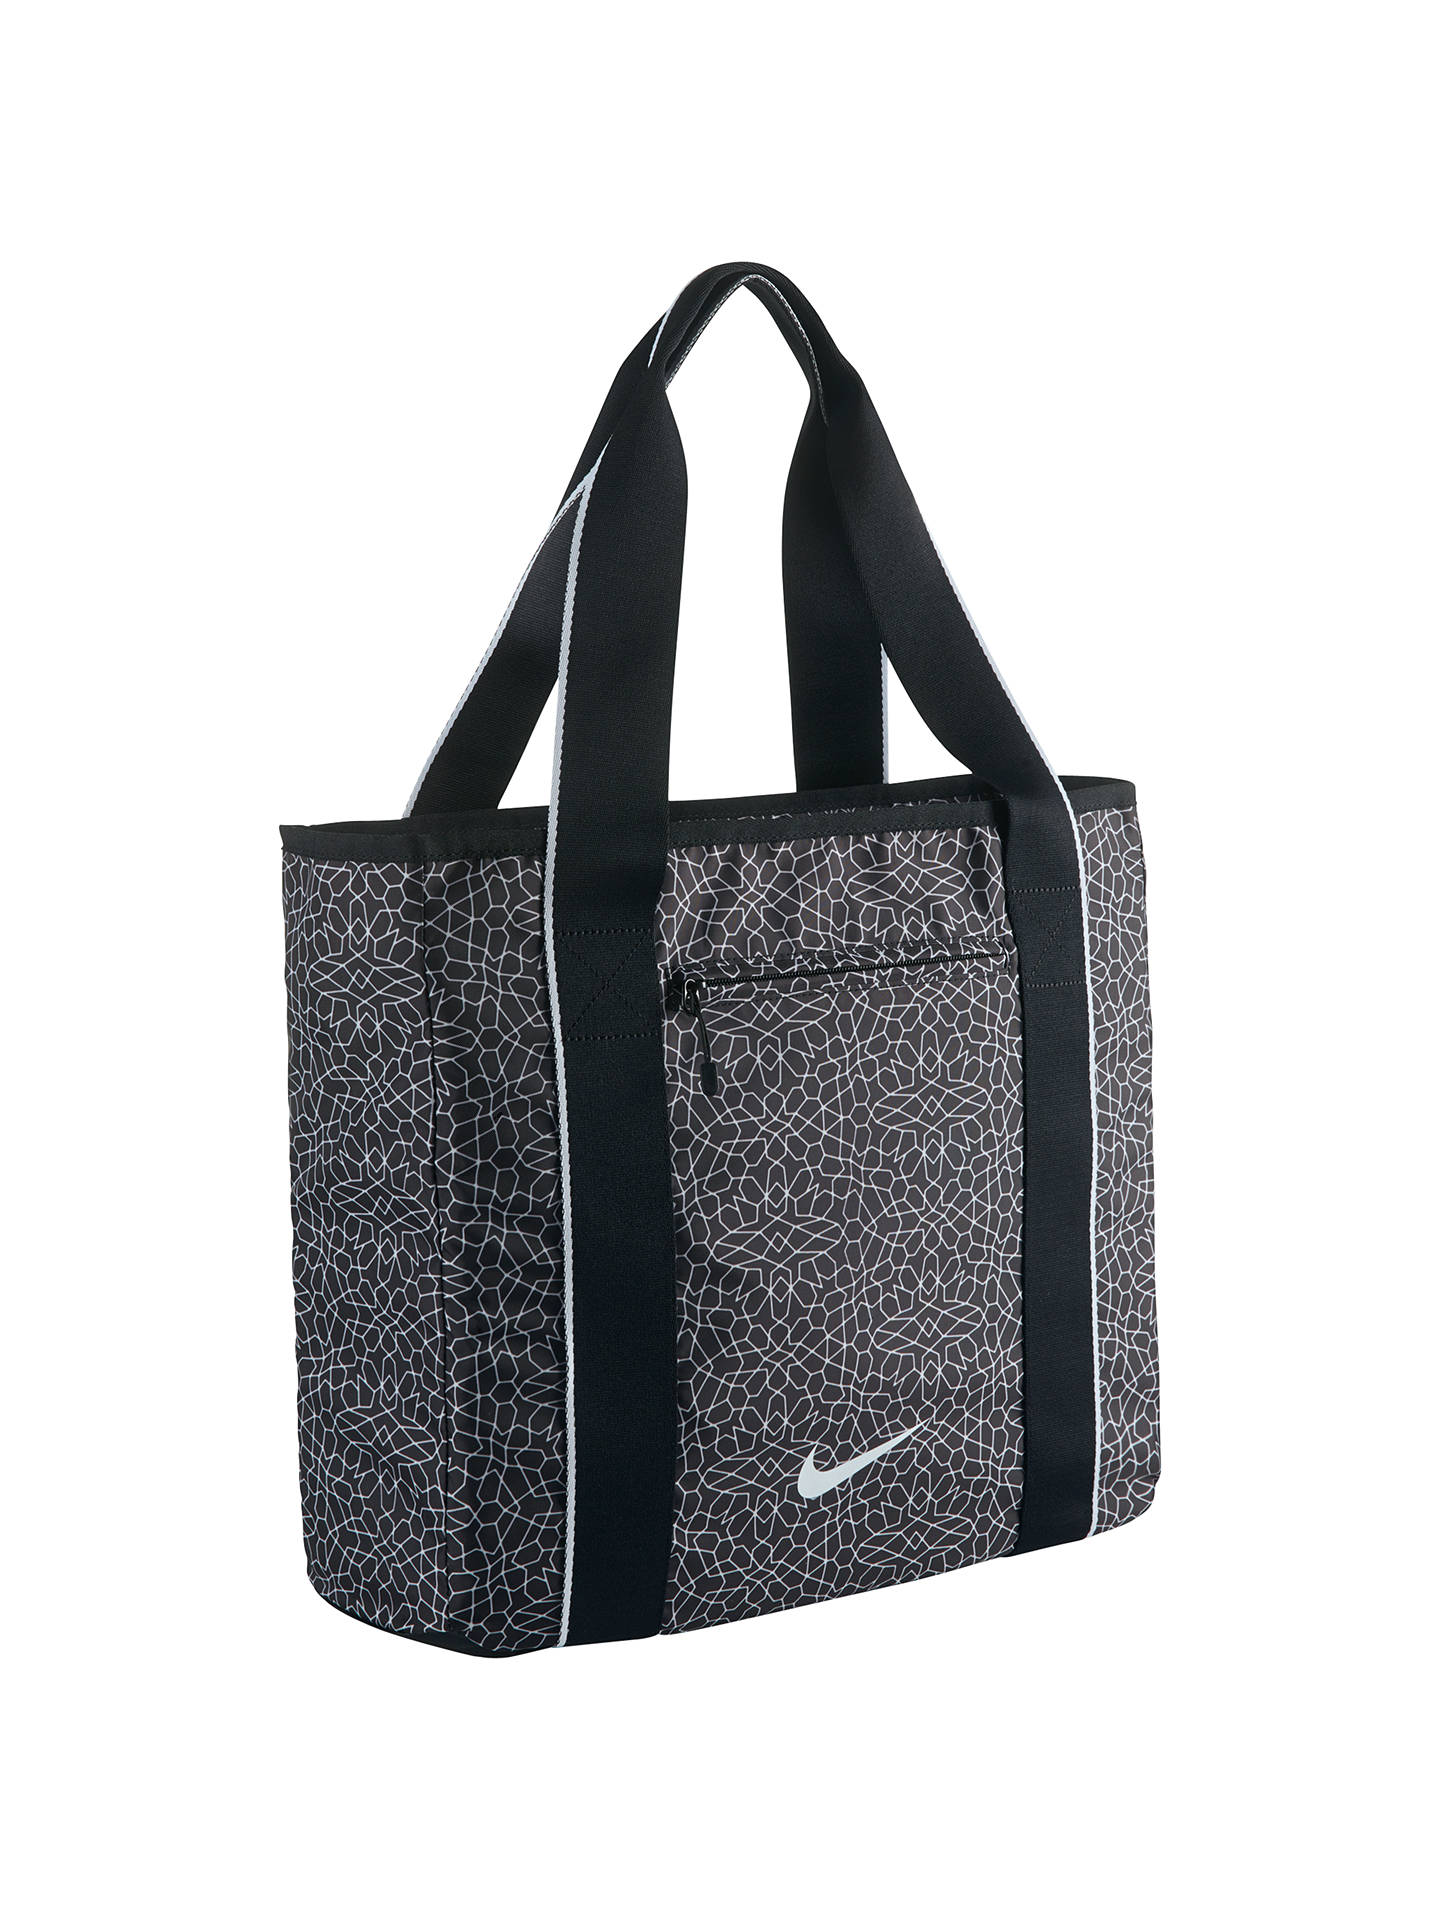 Nike Legend Track Tote Bag, Black at John Lewis & Partners